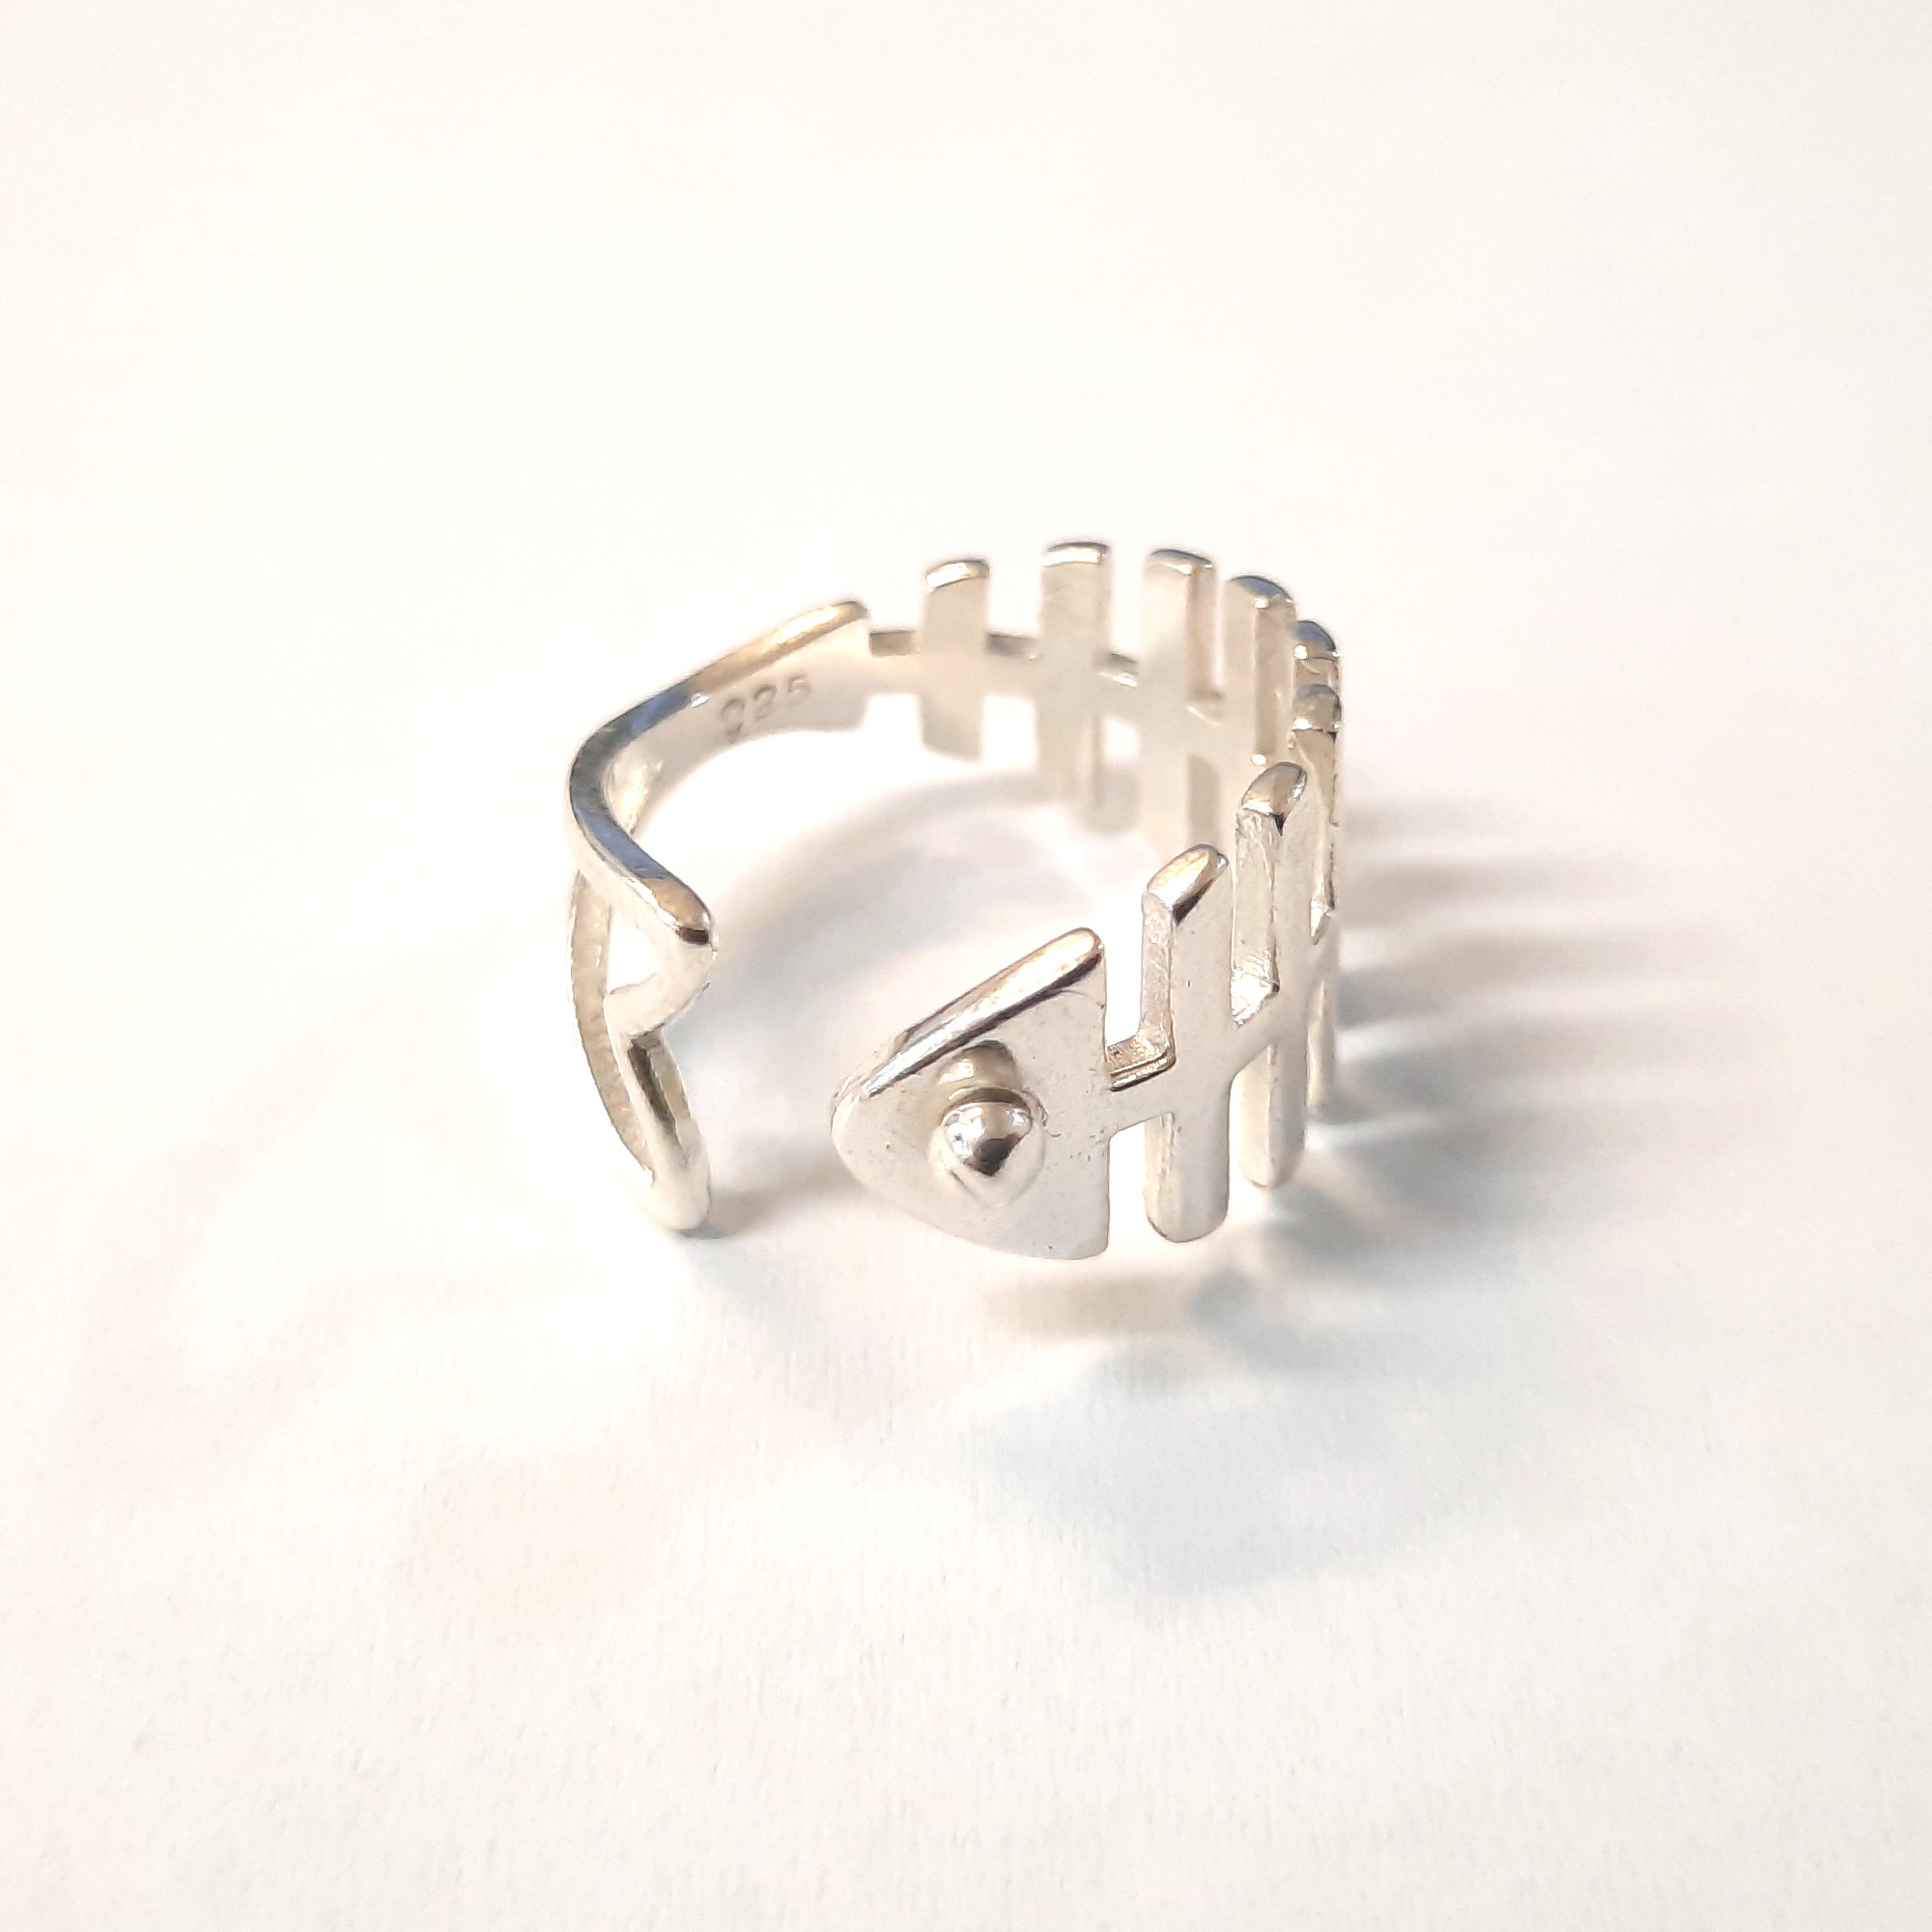 Silver ring - R002190